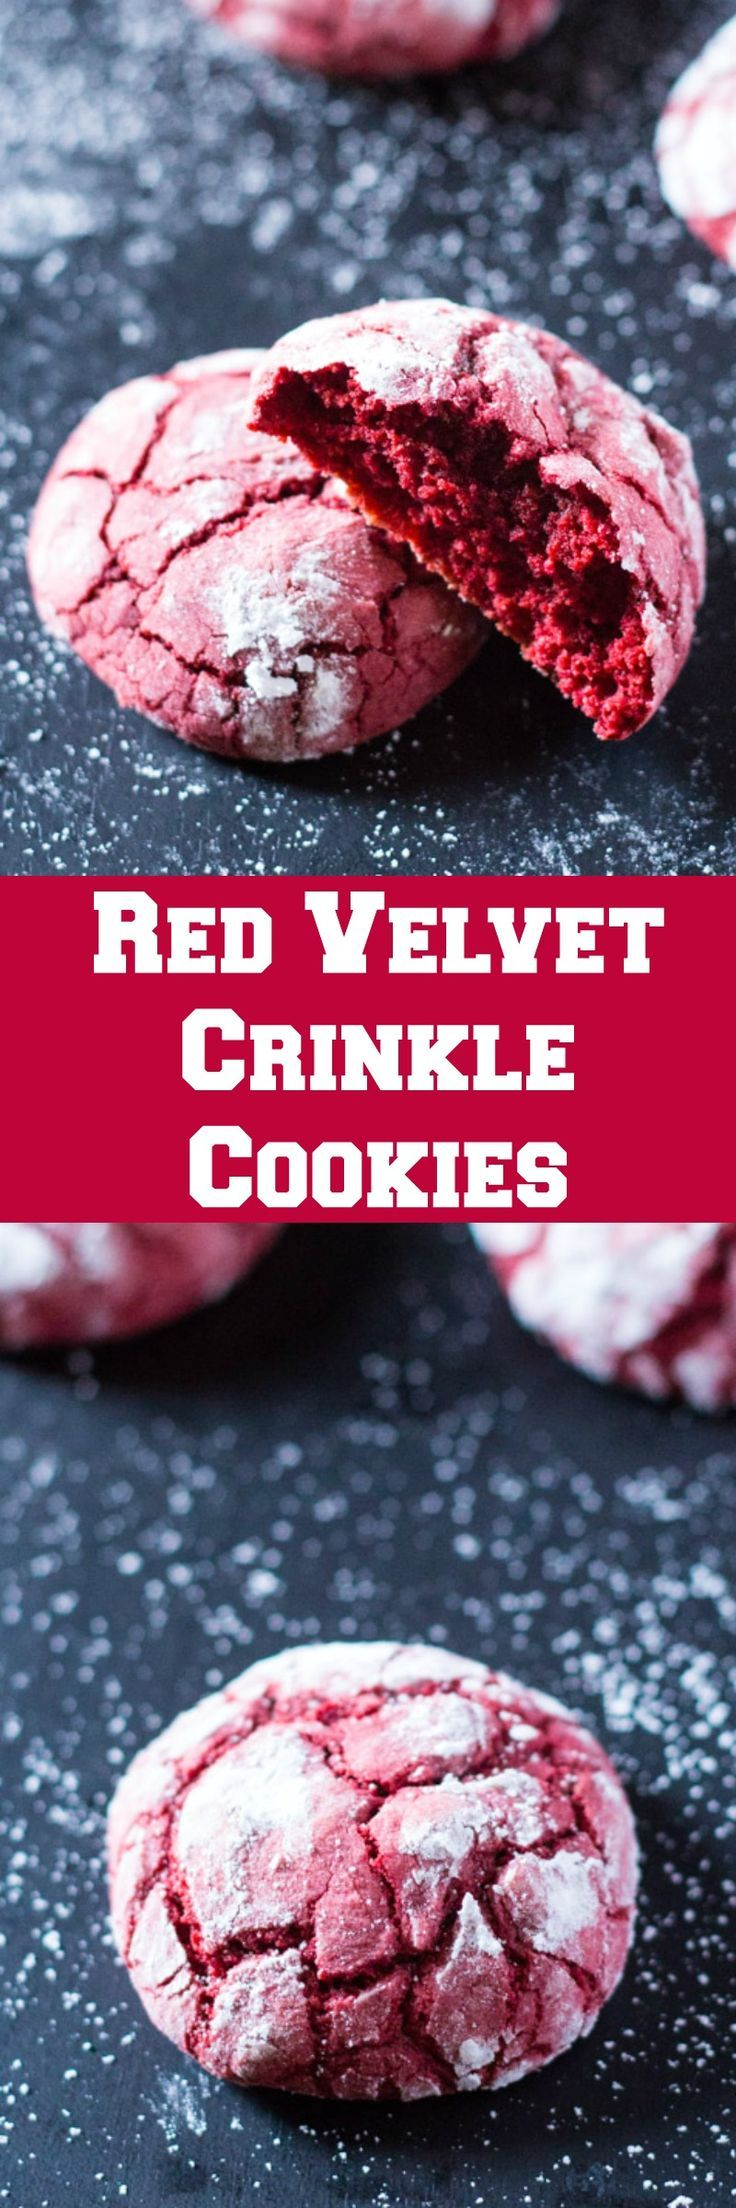 These Red Velvet Crinkle Cookies are perfectly crispy on the outside but chewy on the inside. The perfect cookies for the holidays or even Valentine's Day!